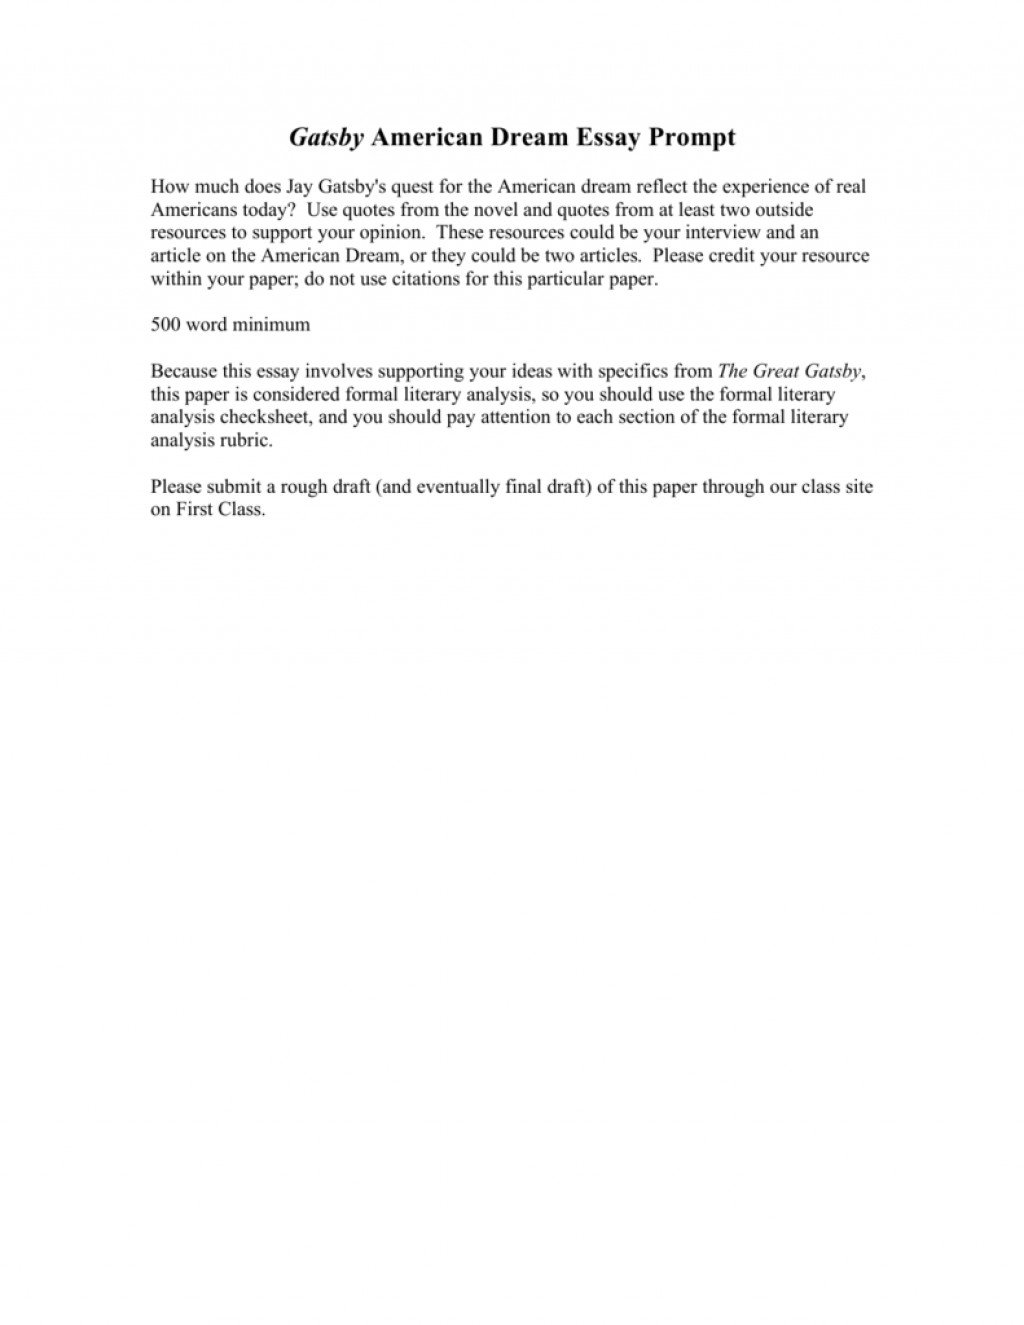 007 008810006 1 Essay Example Great Gatsby American Fantastic Dream Conclusion The Pdf Free Large